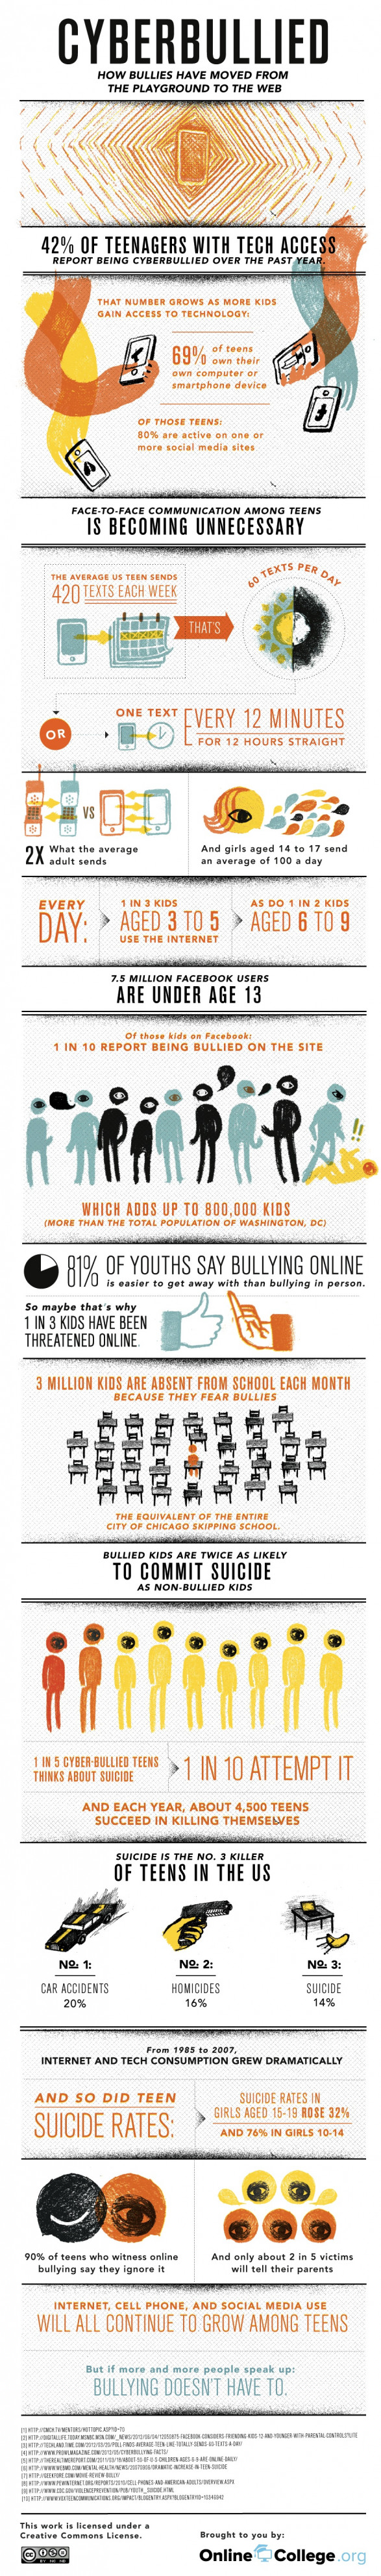 Cyberbullying: Scourge Of The Internet